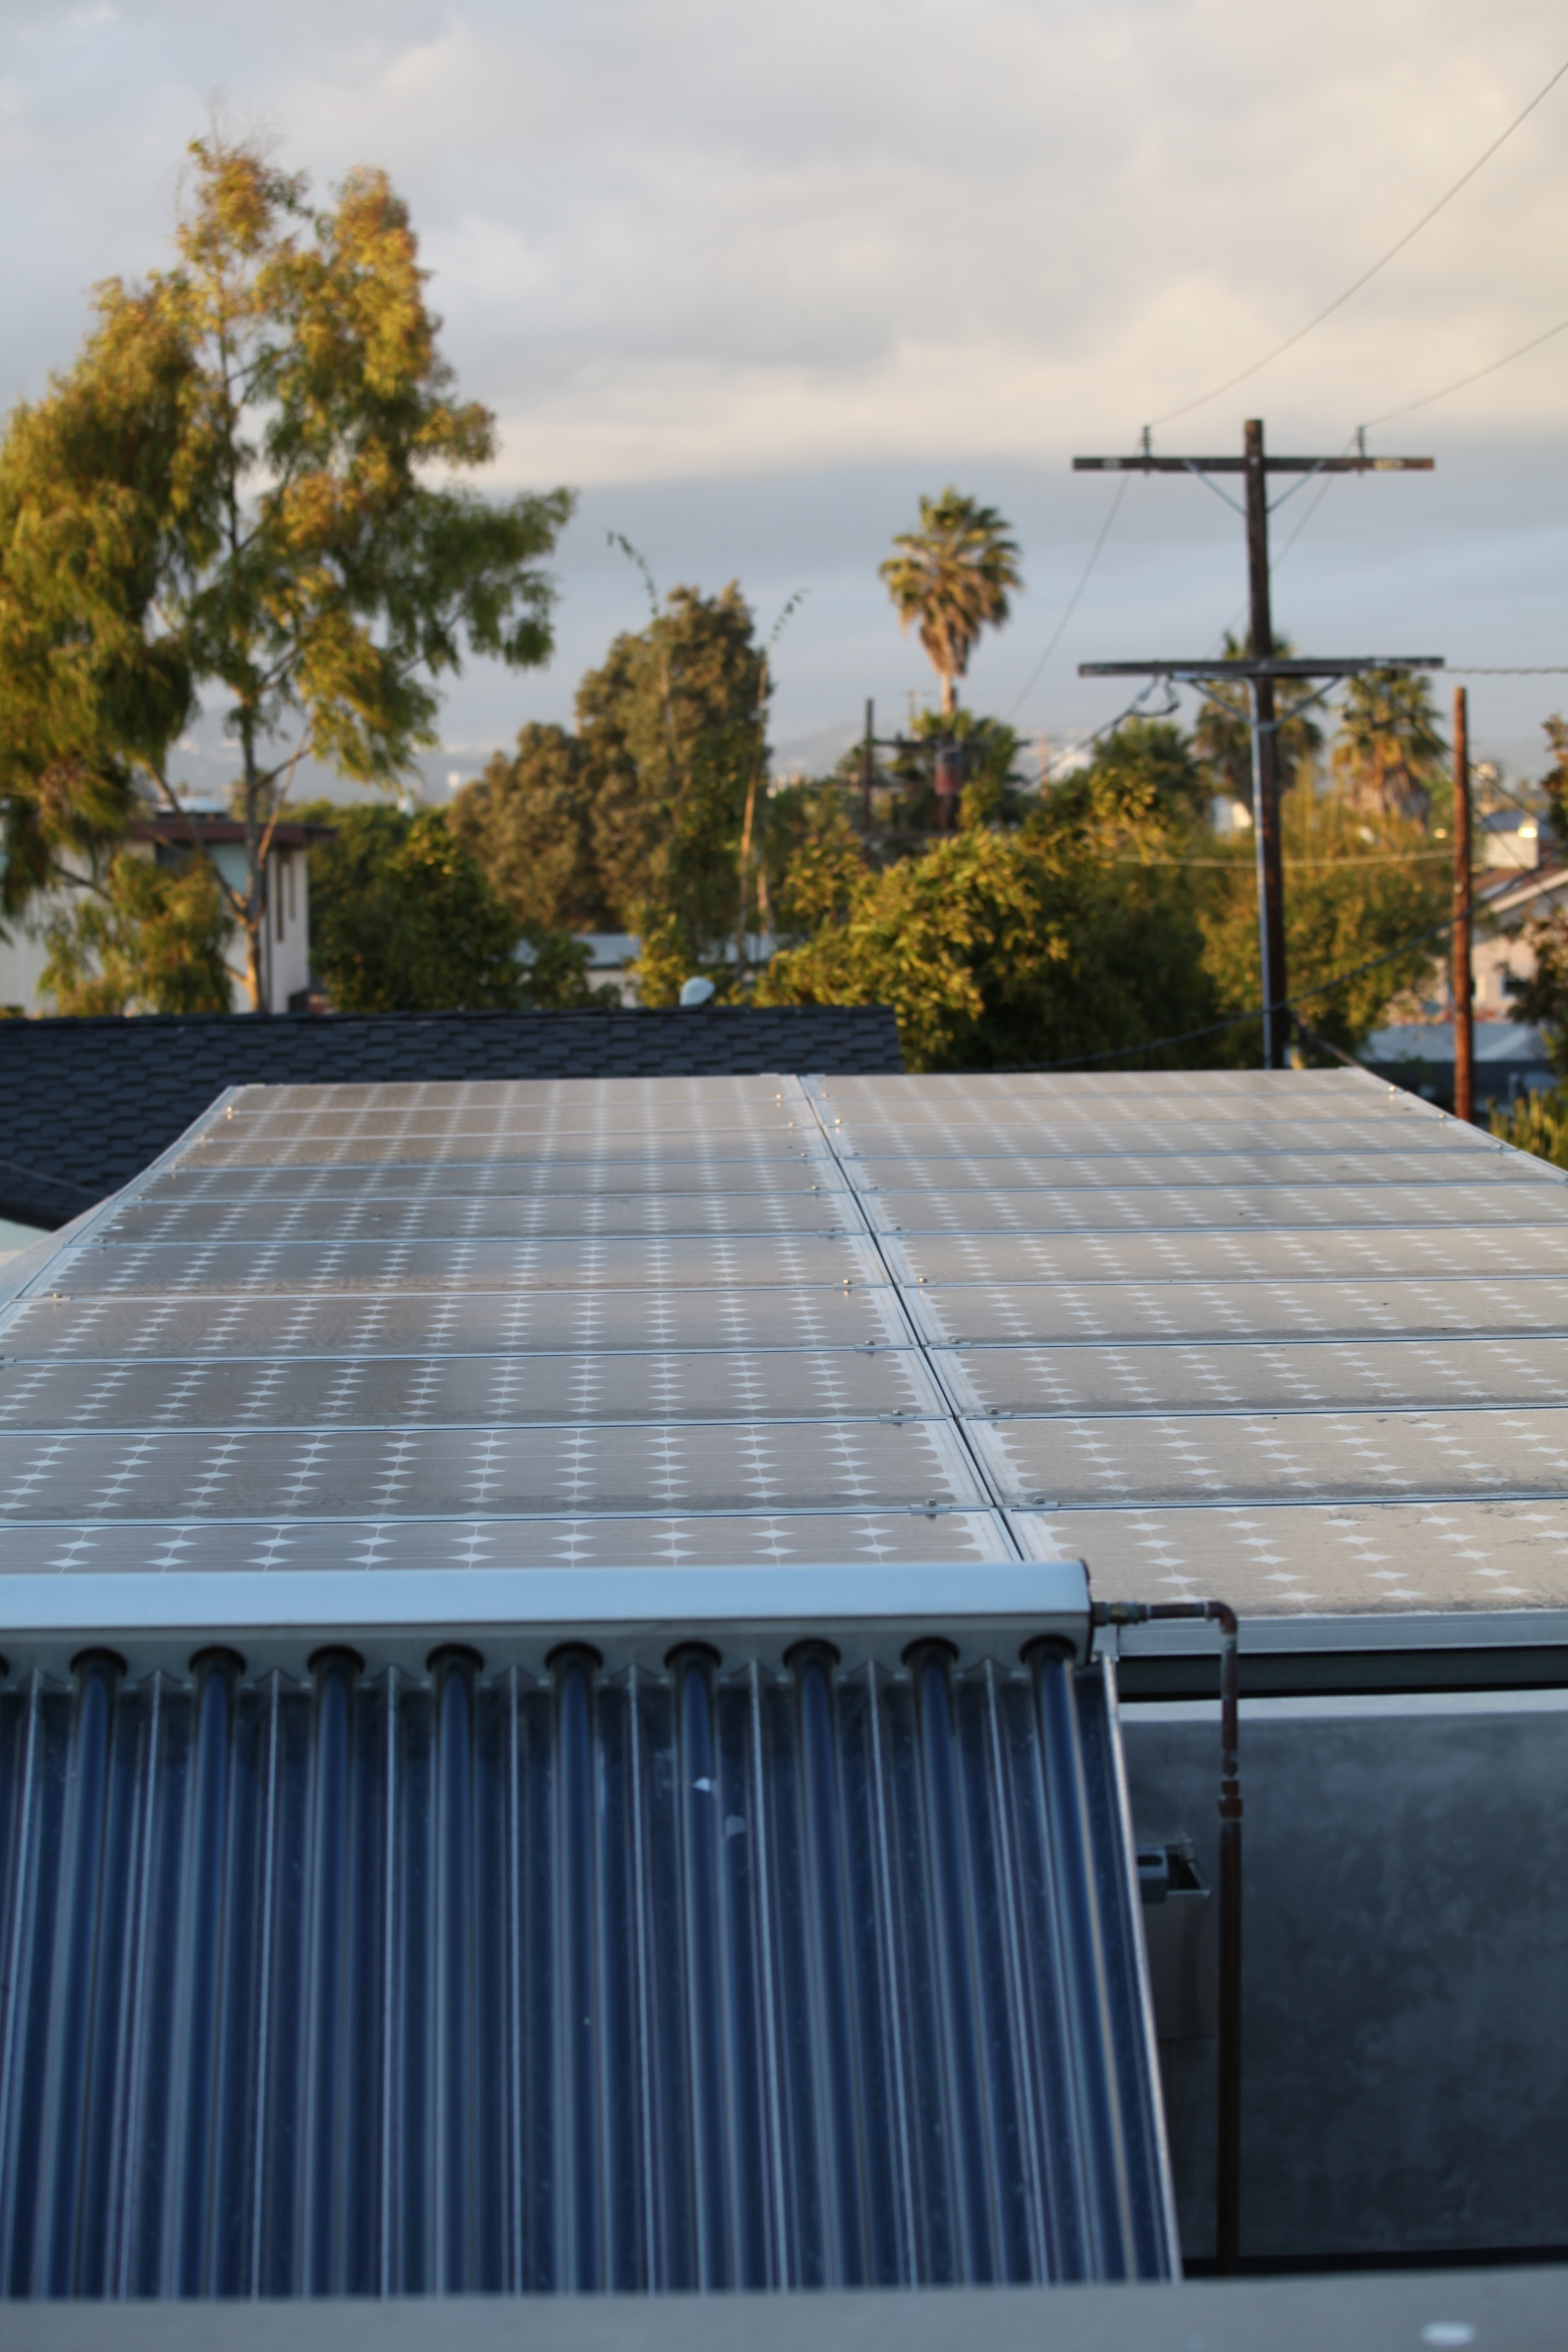 Photovoltaic panels and evacuated tube solar collectors on top of  the McKinley House  were an important part of the residence's energy balance and sustainable portfolio.